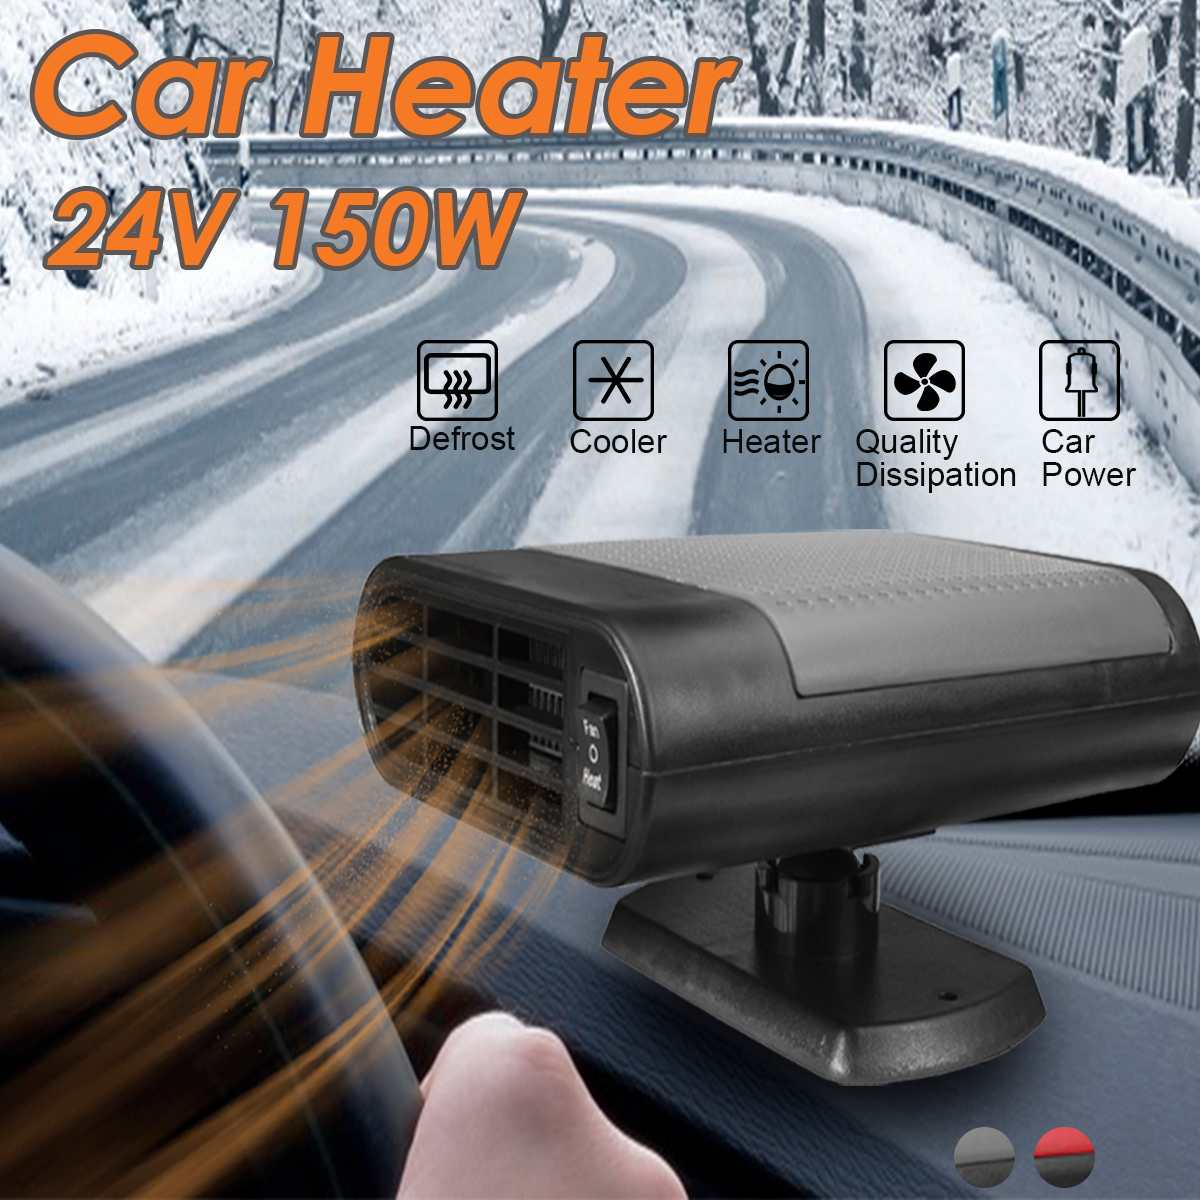 24V 200W Car Heaters Electric Heaters Glass Defrost Defog Heating Machine Car Heating Accessories Fan-Heater Window Mist Remover